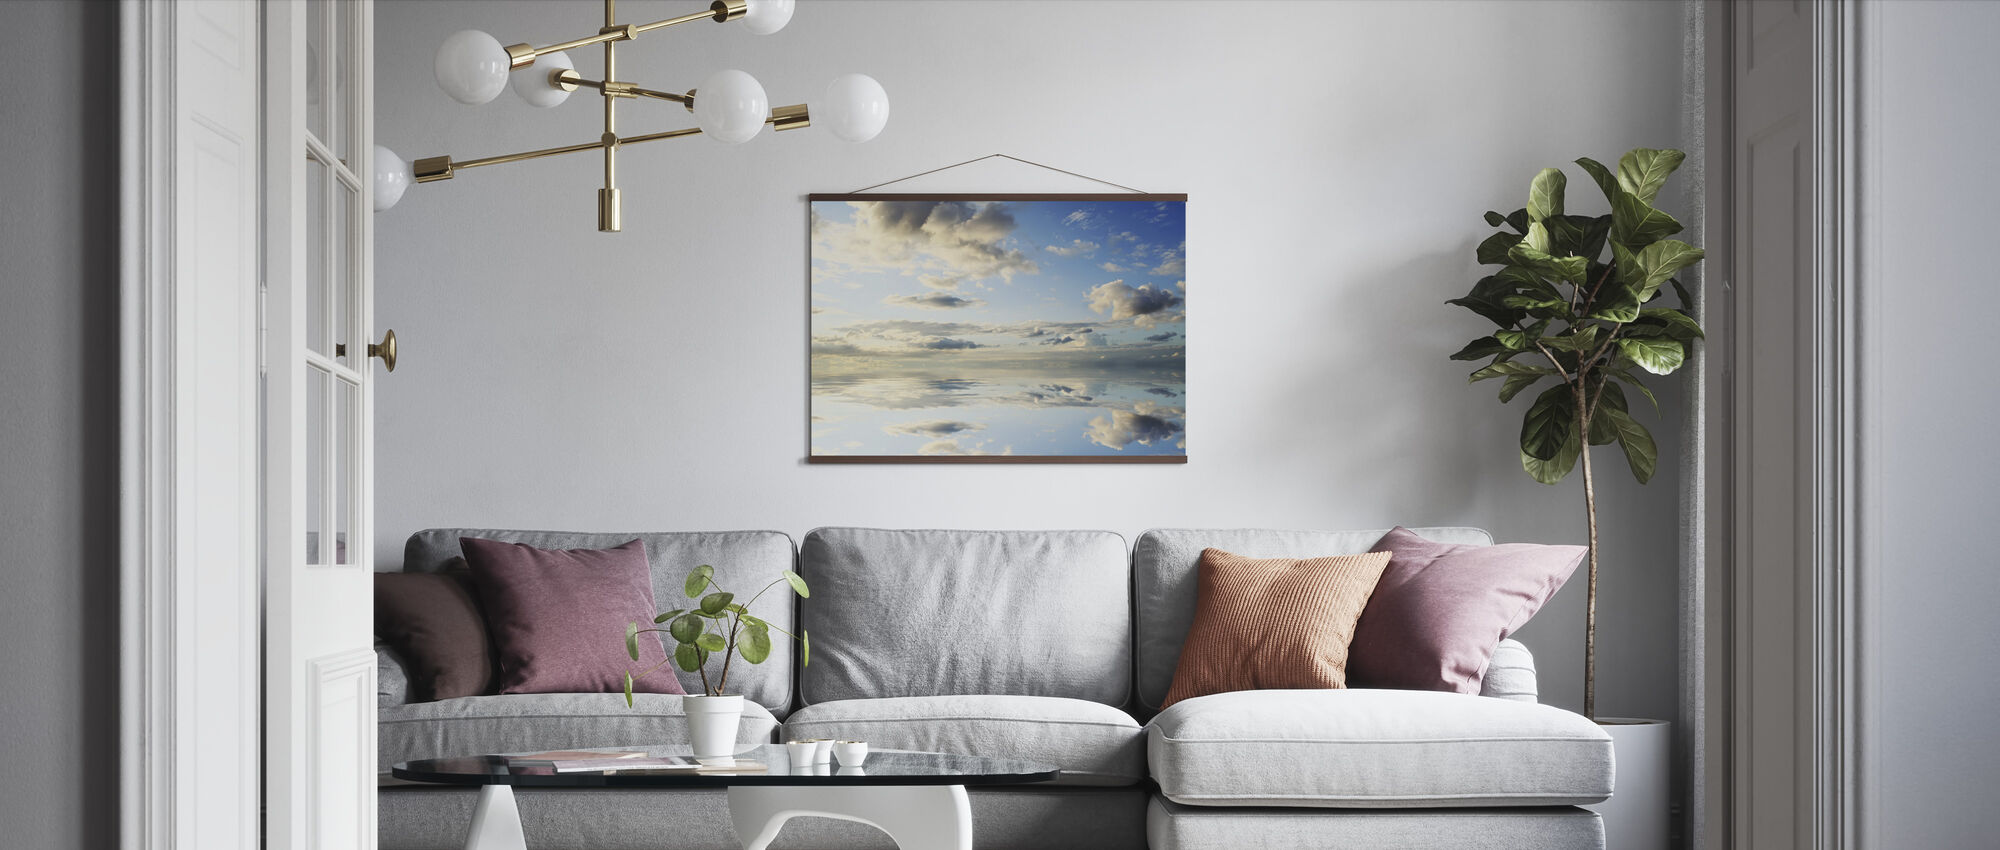 Sea and Beautiful Sky - Poster - Living Room